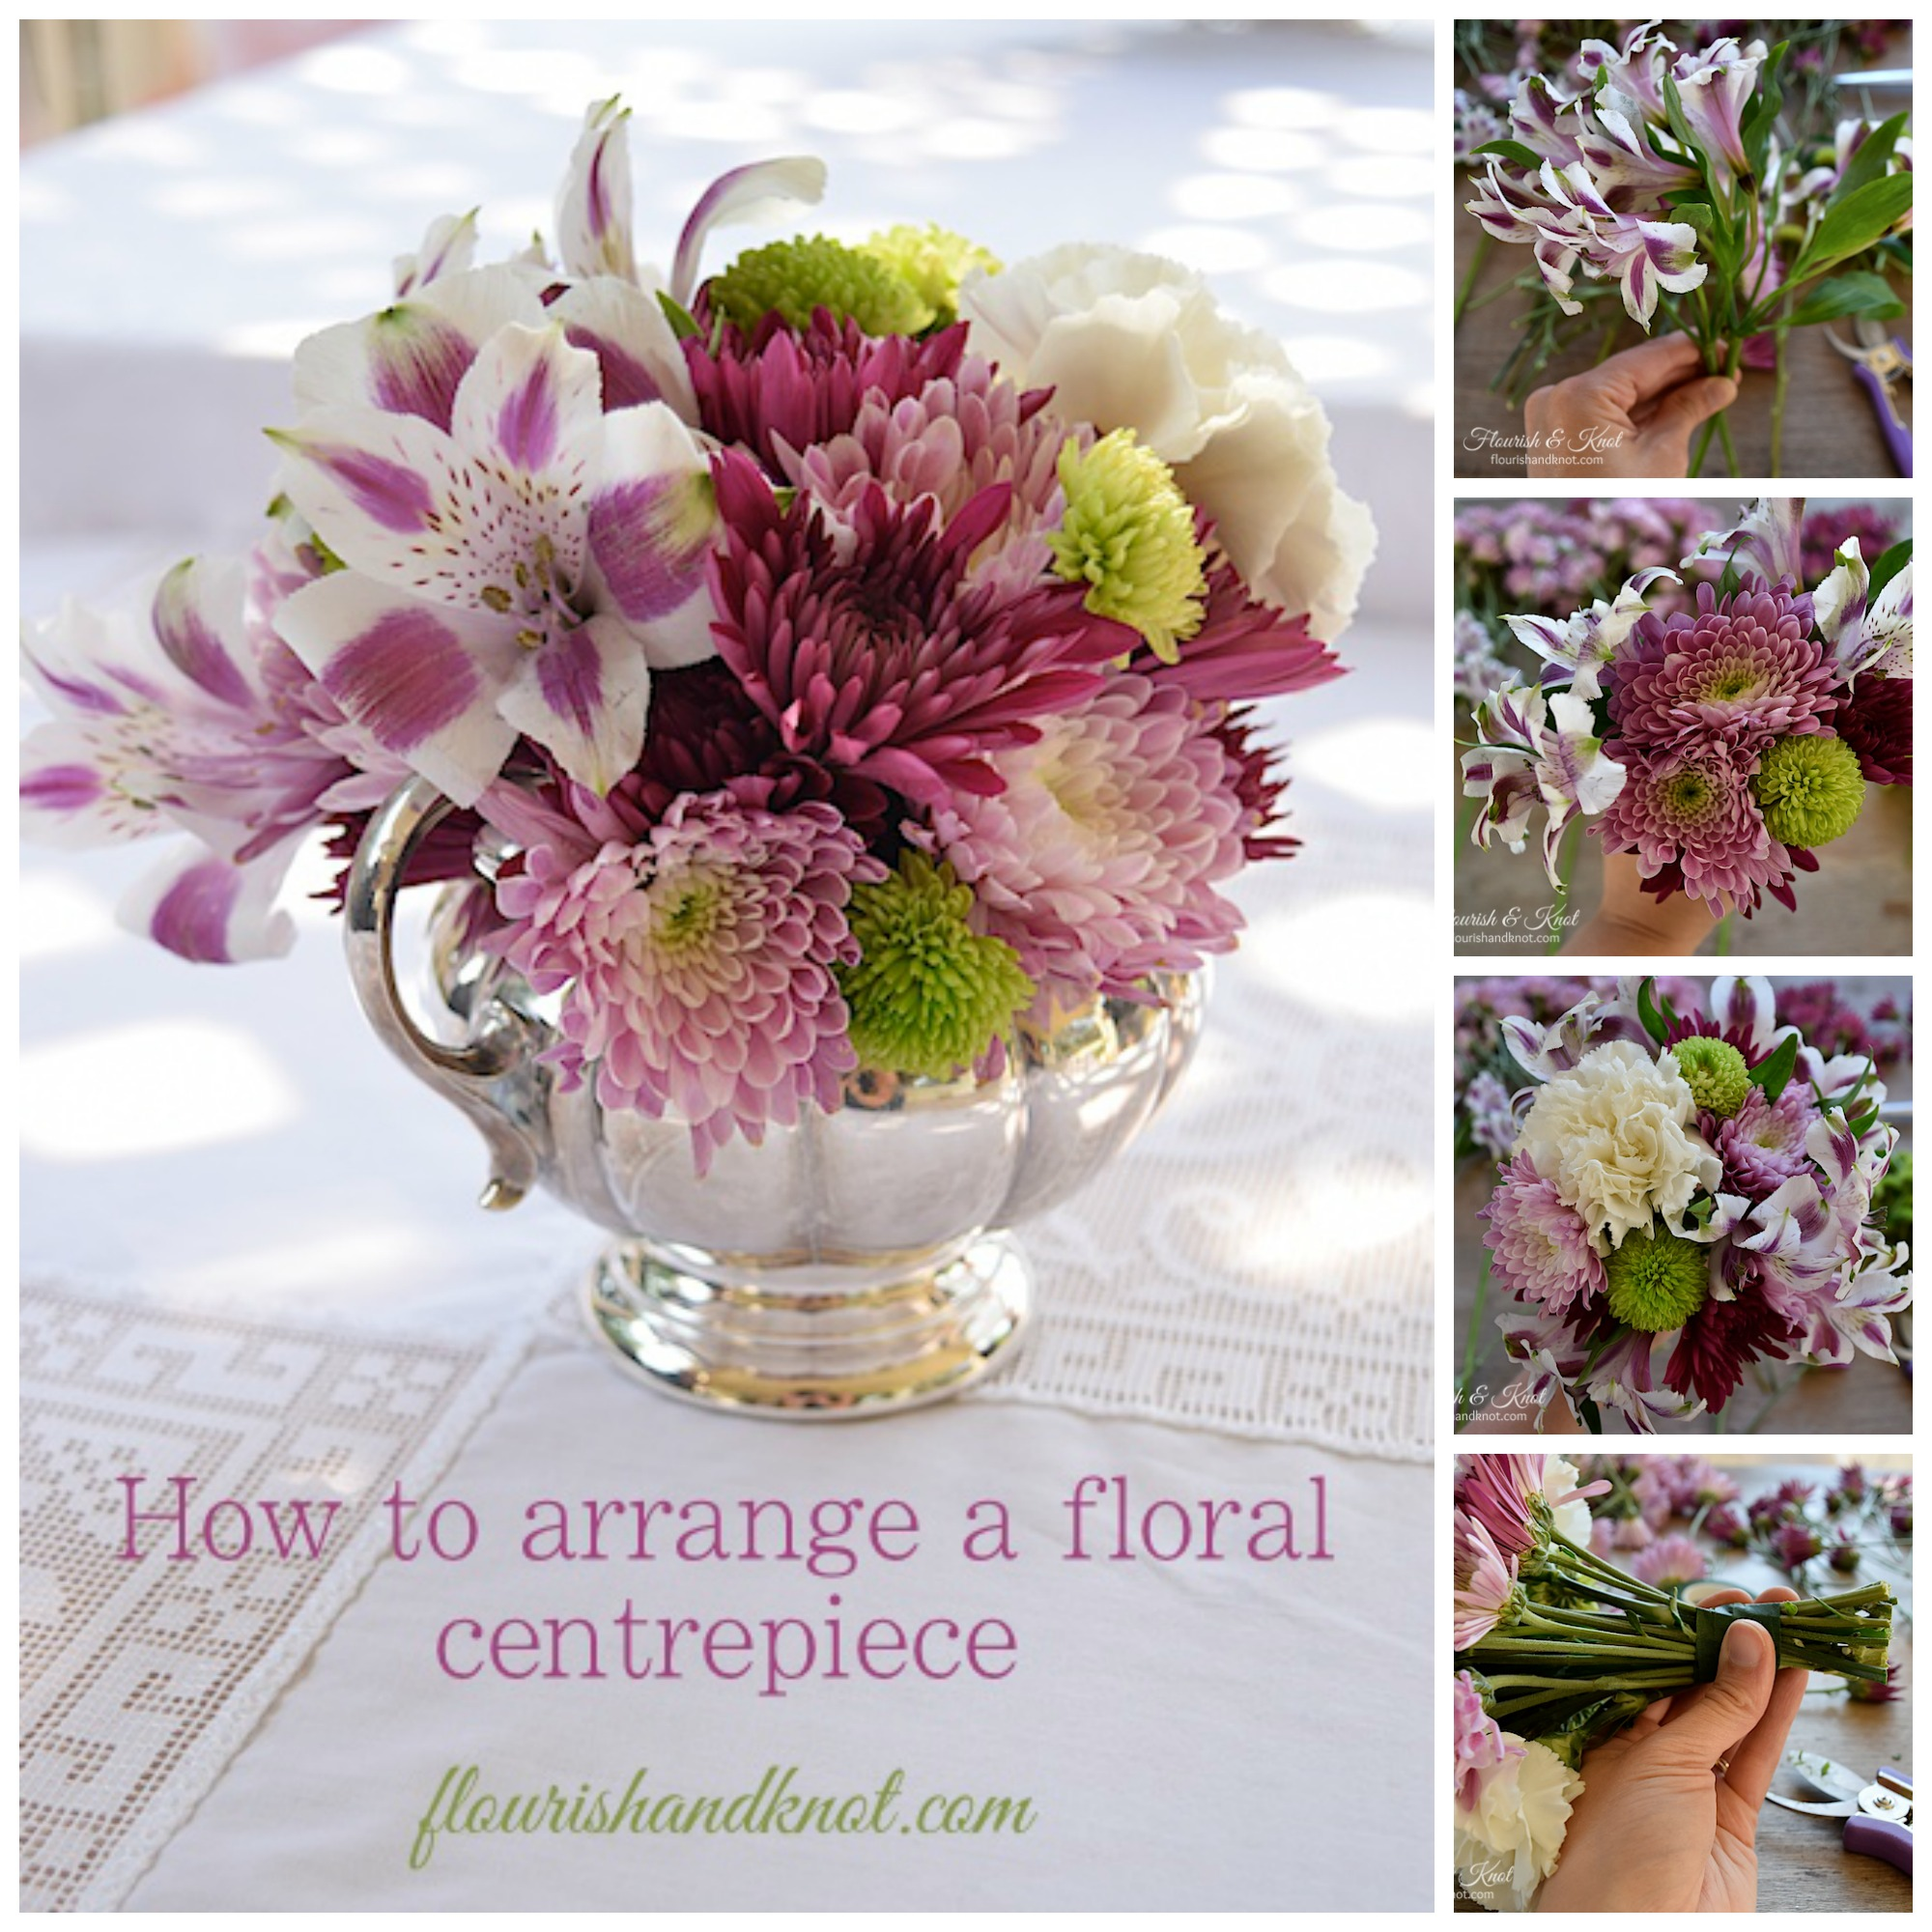 How to arrange a floral centrepiece | My 100th post!